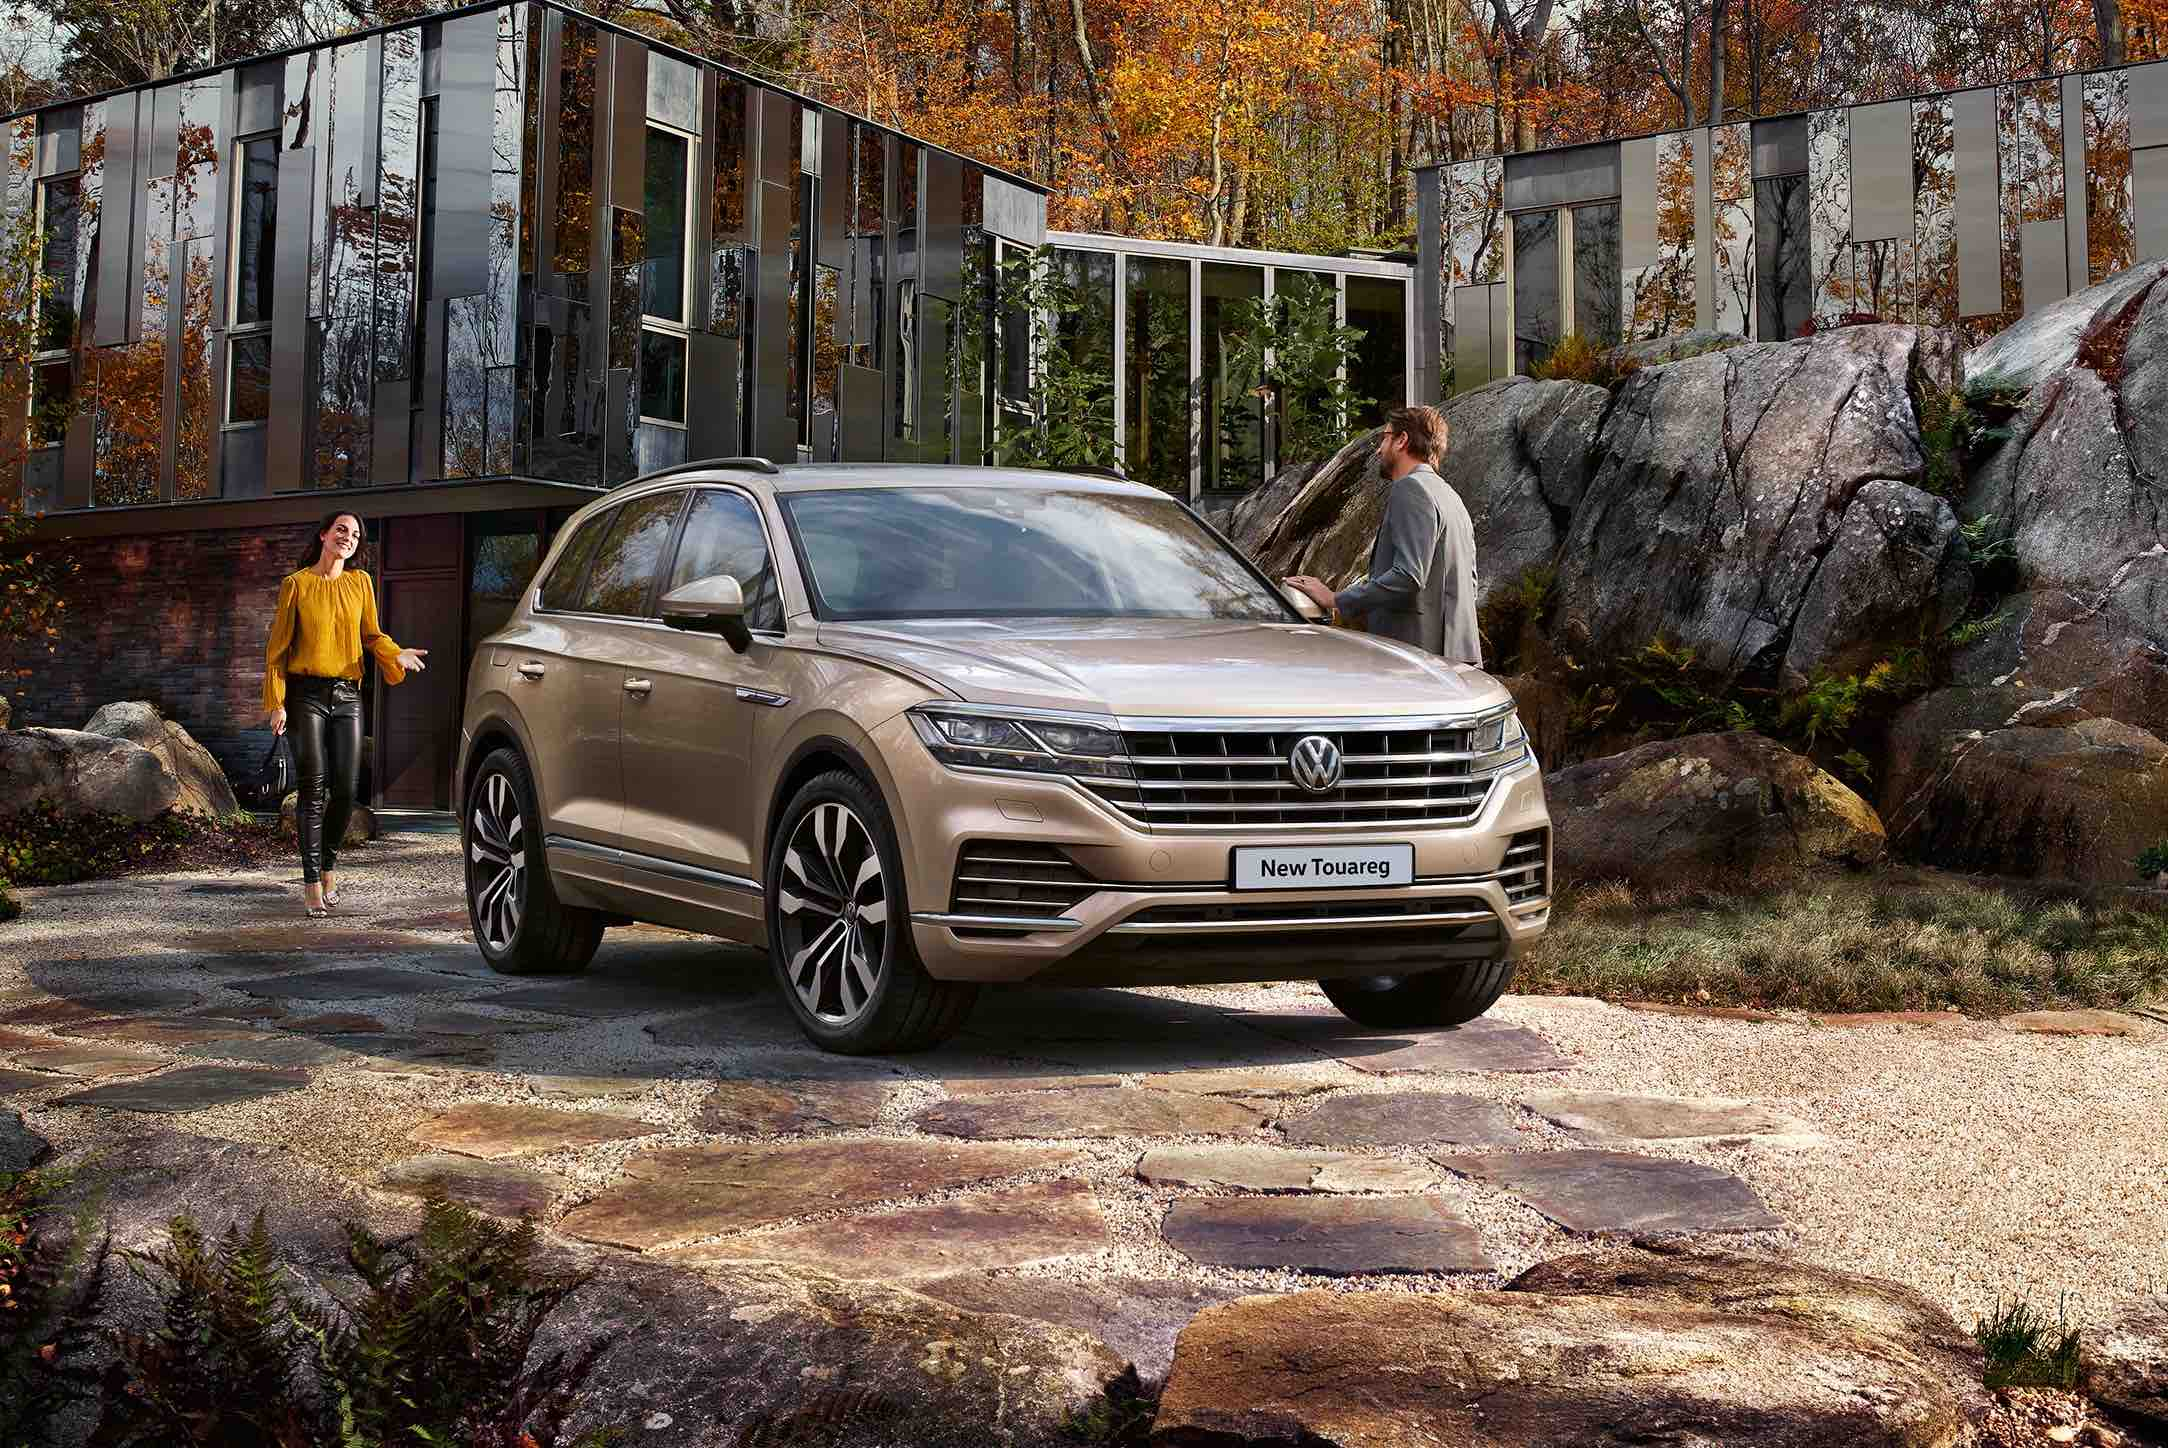 ORDER BOOKS OPEN FOR TOUAREG: VOLKSWAGEN'S FLAGSHIP SUV